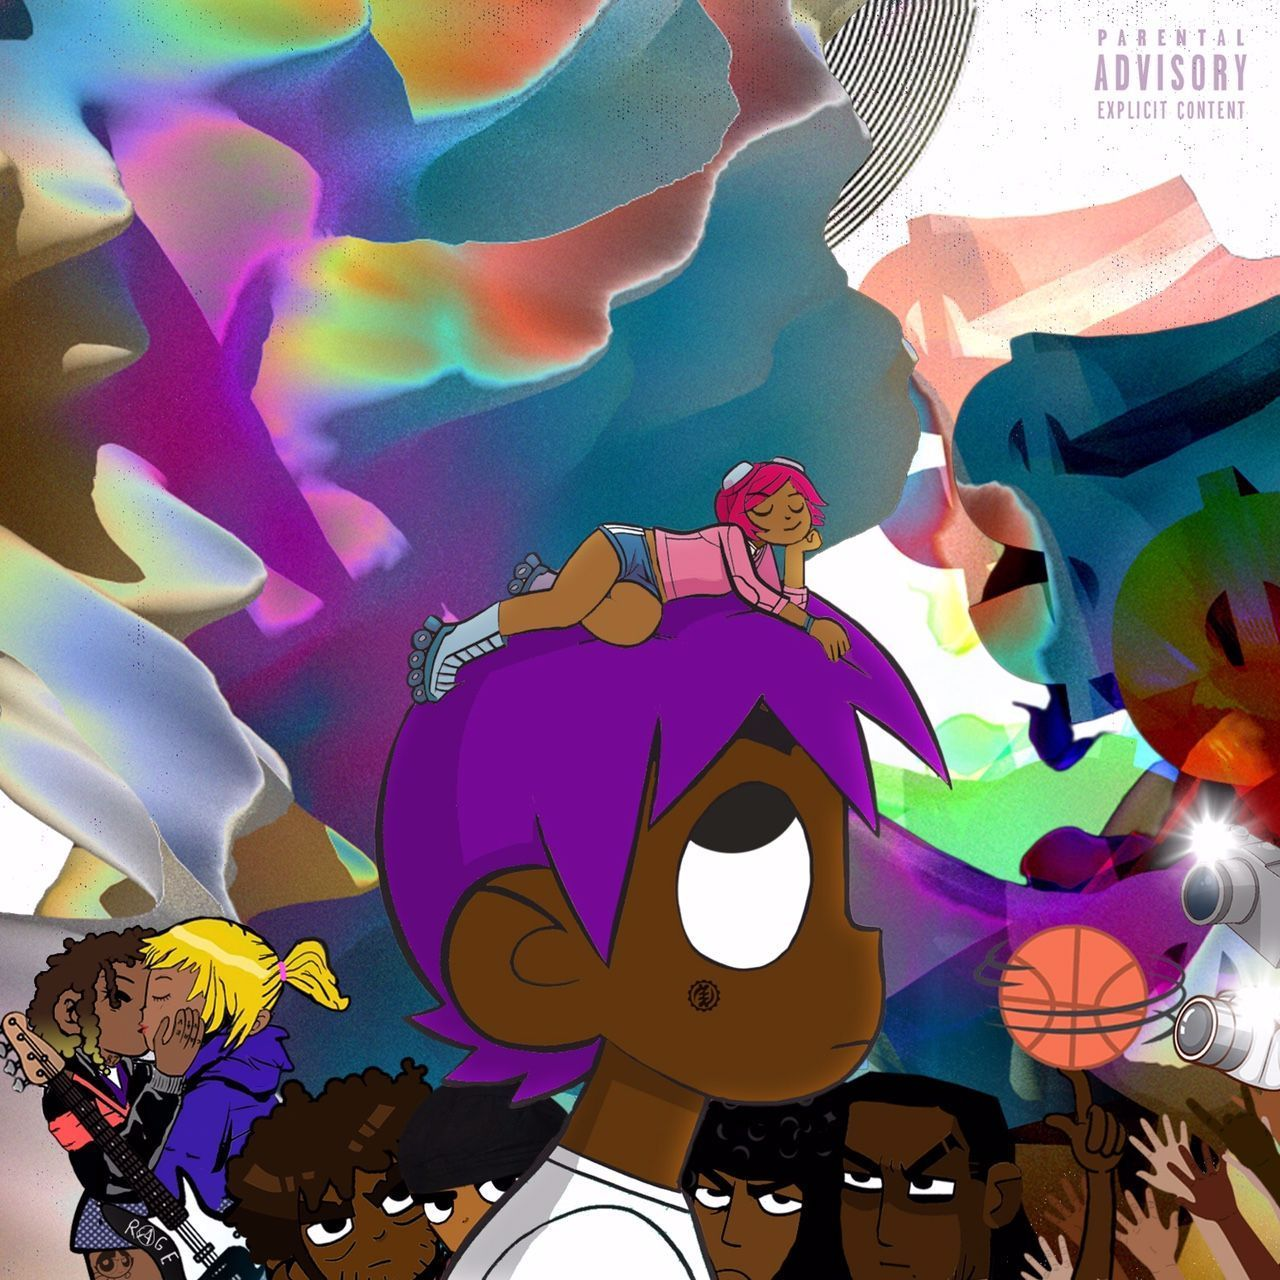 Lil Uzi Vert Vs The World Wallpapers Top Free Lil Uzi Vert Vs The World Backgrounds Wallpaperaccess A cool wallpaper for y all liluzivert. lil uzi vert vs the world wallpapers